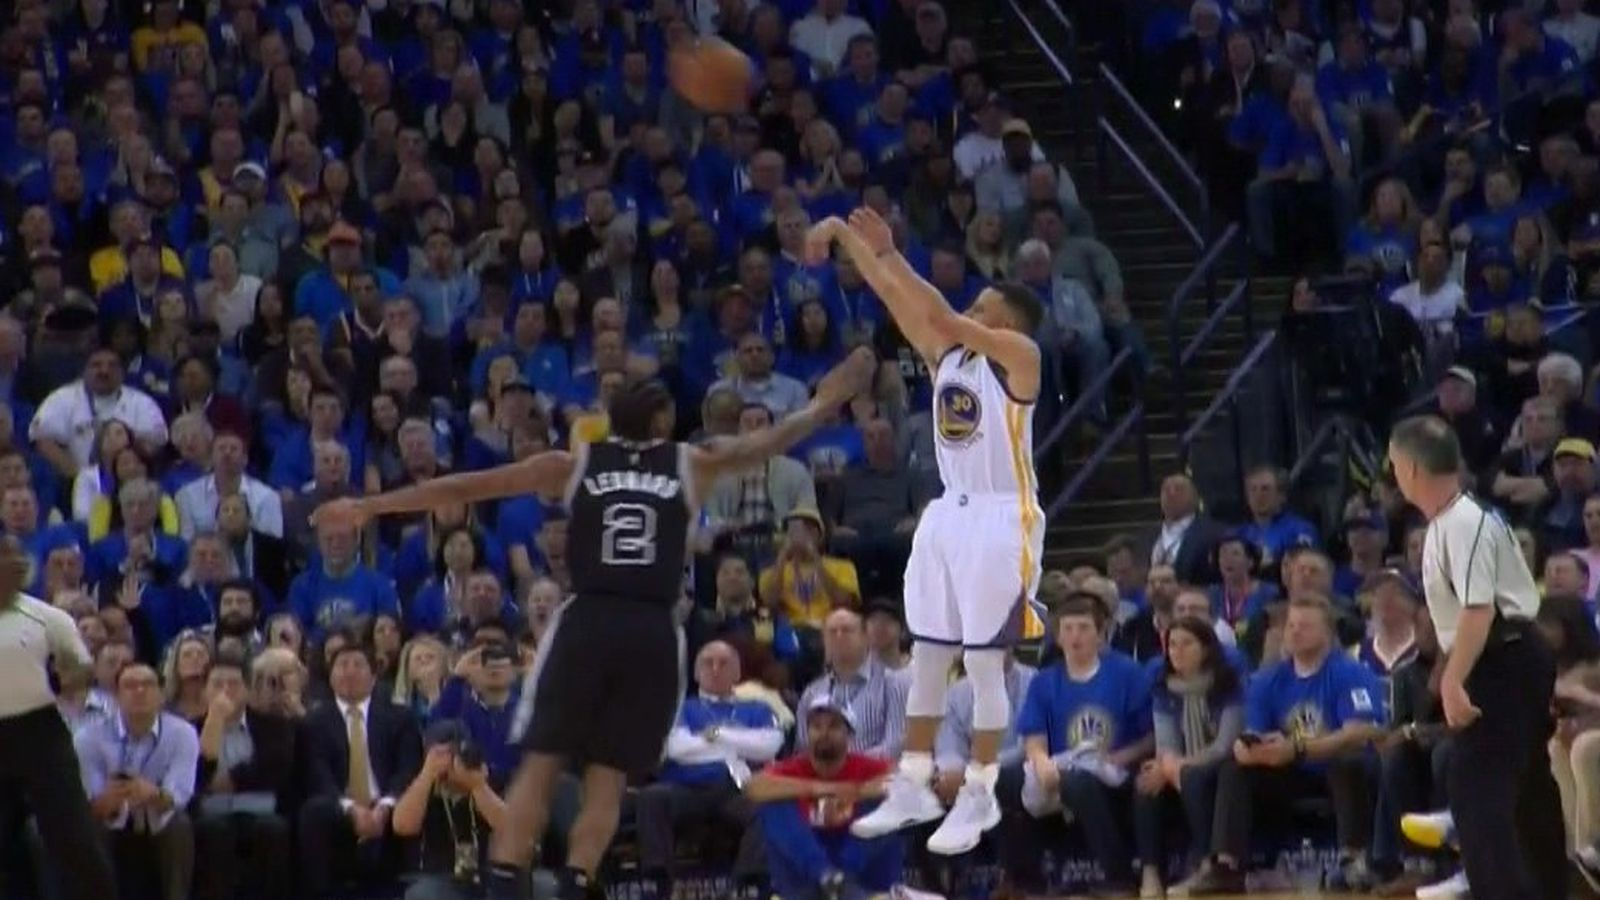 Steph Curry fakes out Kawhi Leonard & buries the 3-pointer